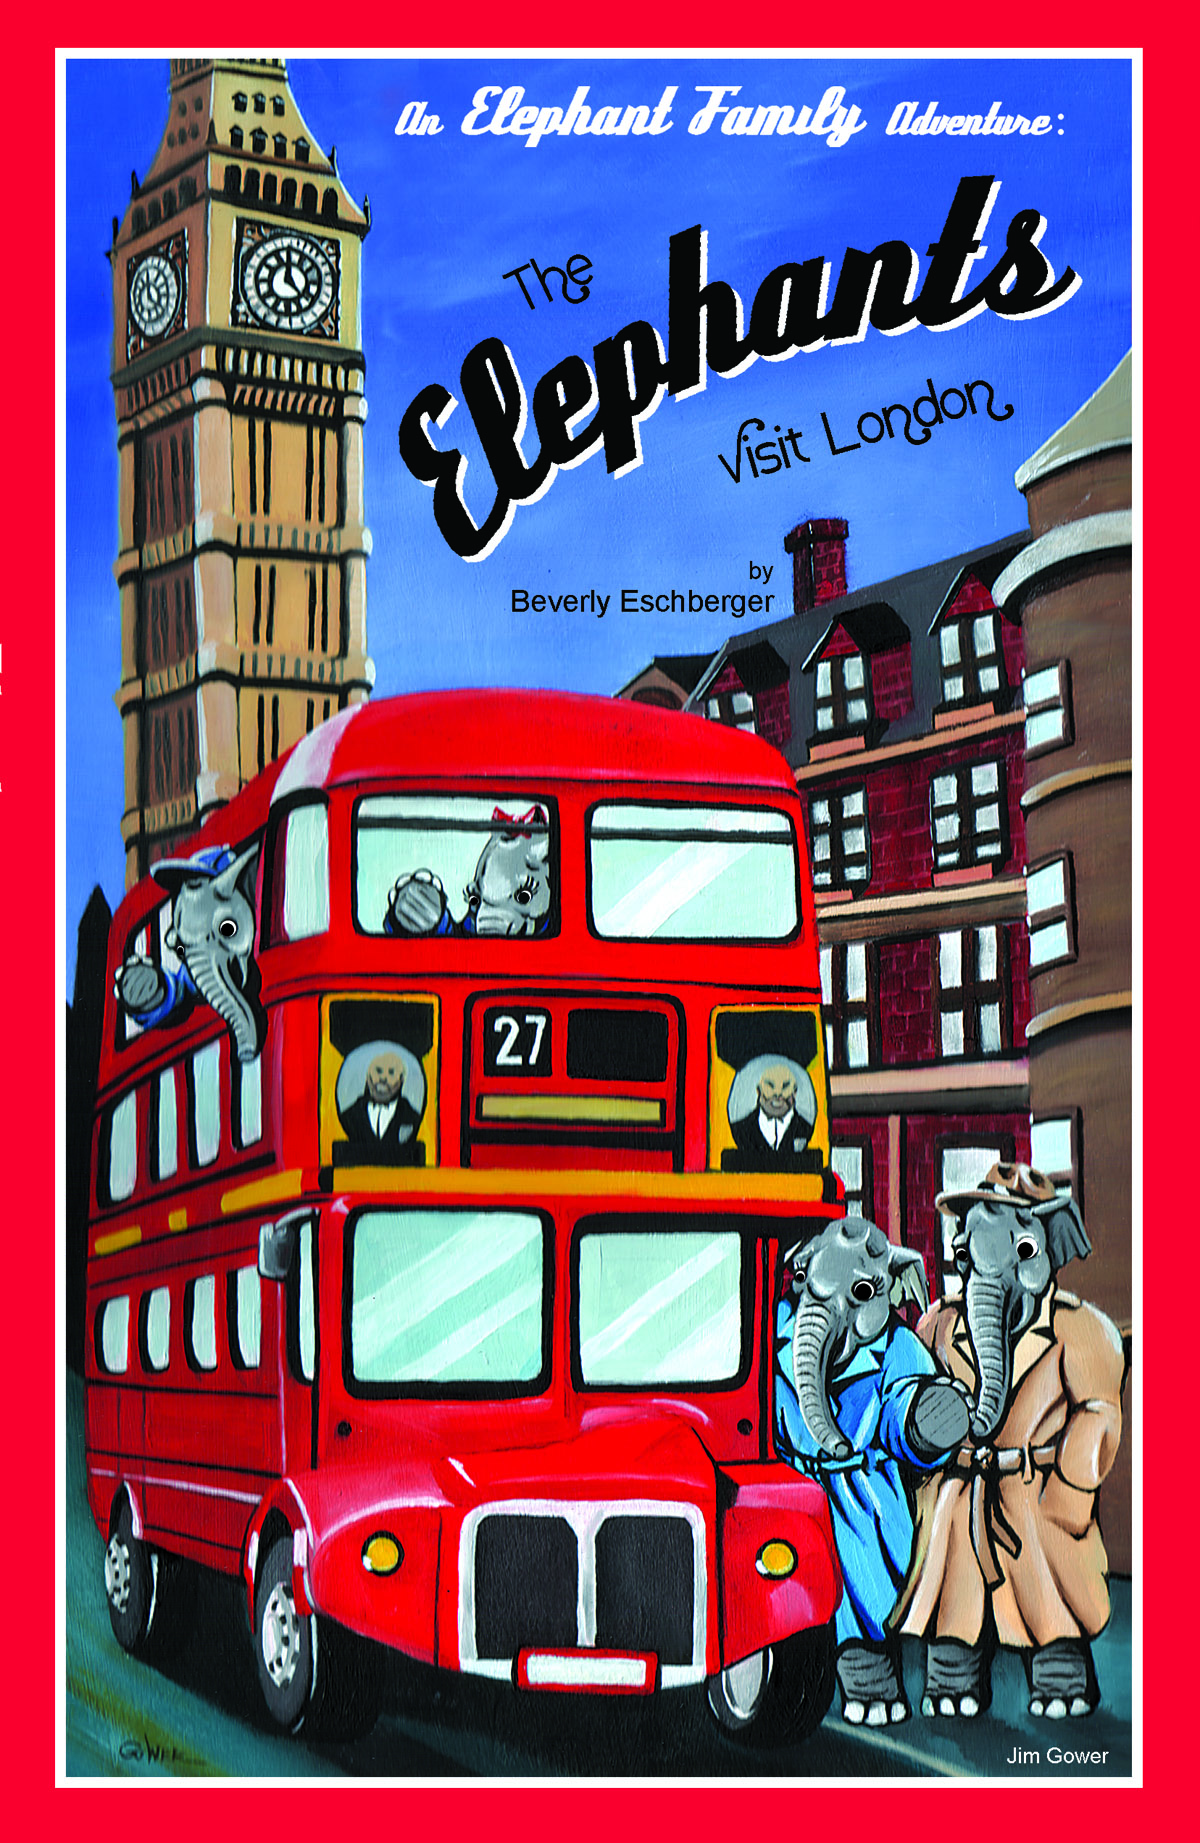 The Elephants Visit London